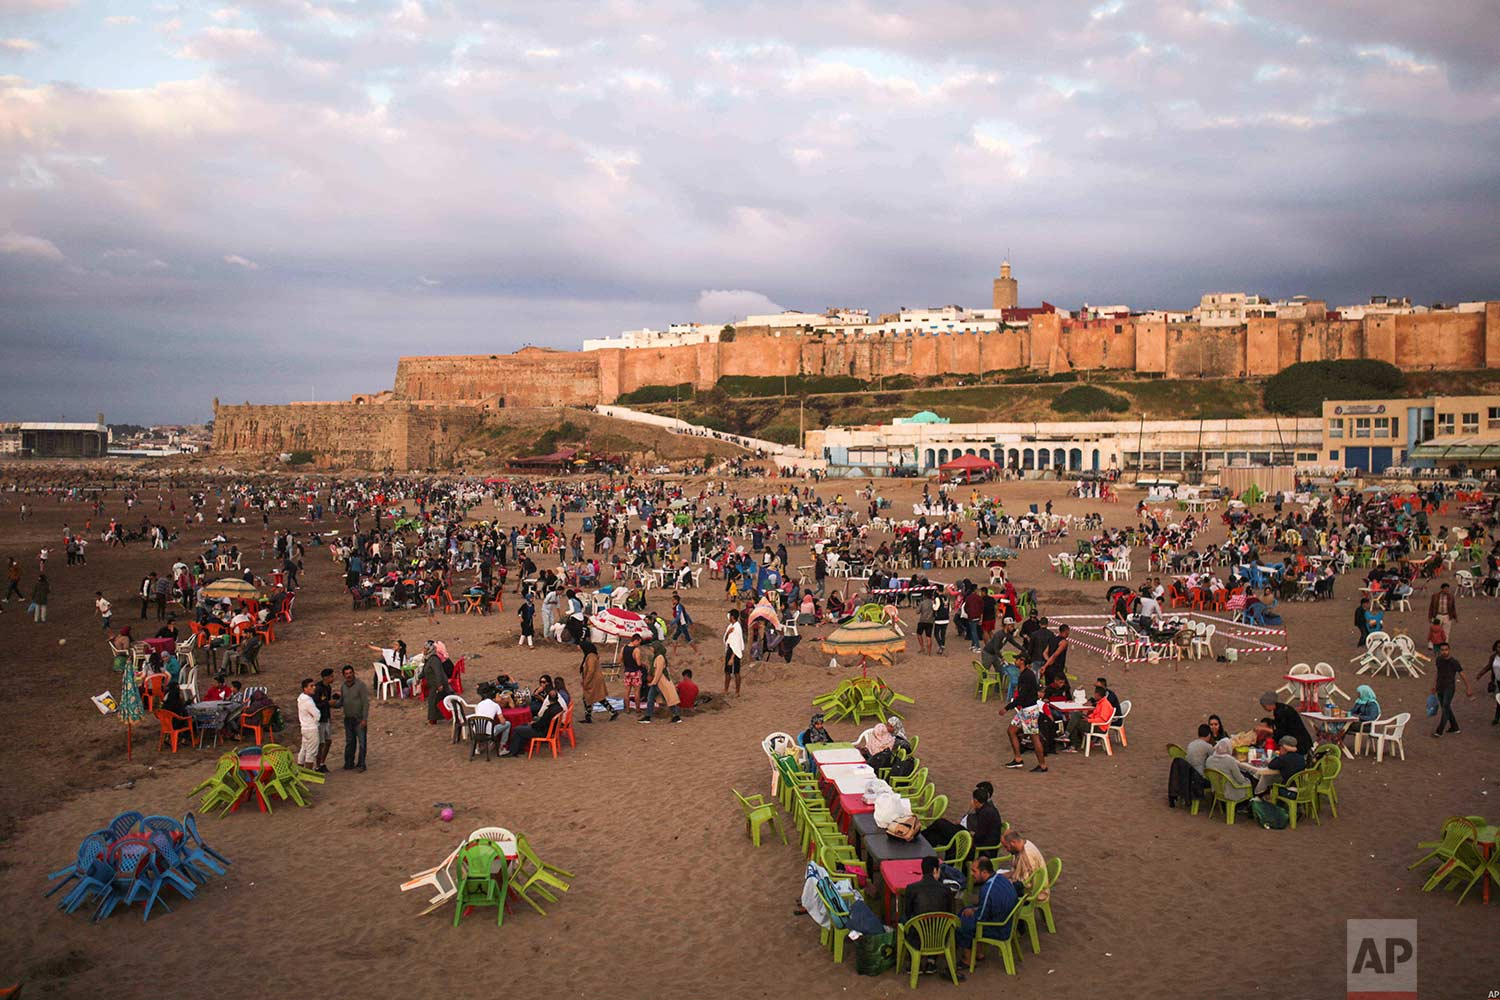 People gather on the beach before sunset to break their fast in the holy month of Ramadan, Rabat, Morocco, Saturday, June 9, 2018. (AP Photo/Mosa'ab Elshamy)